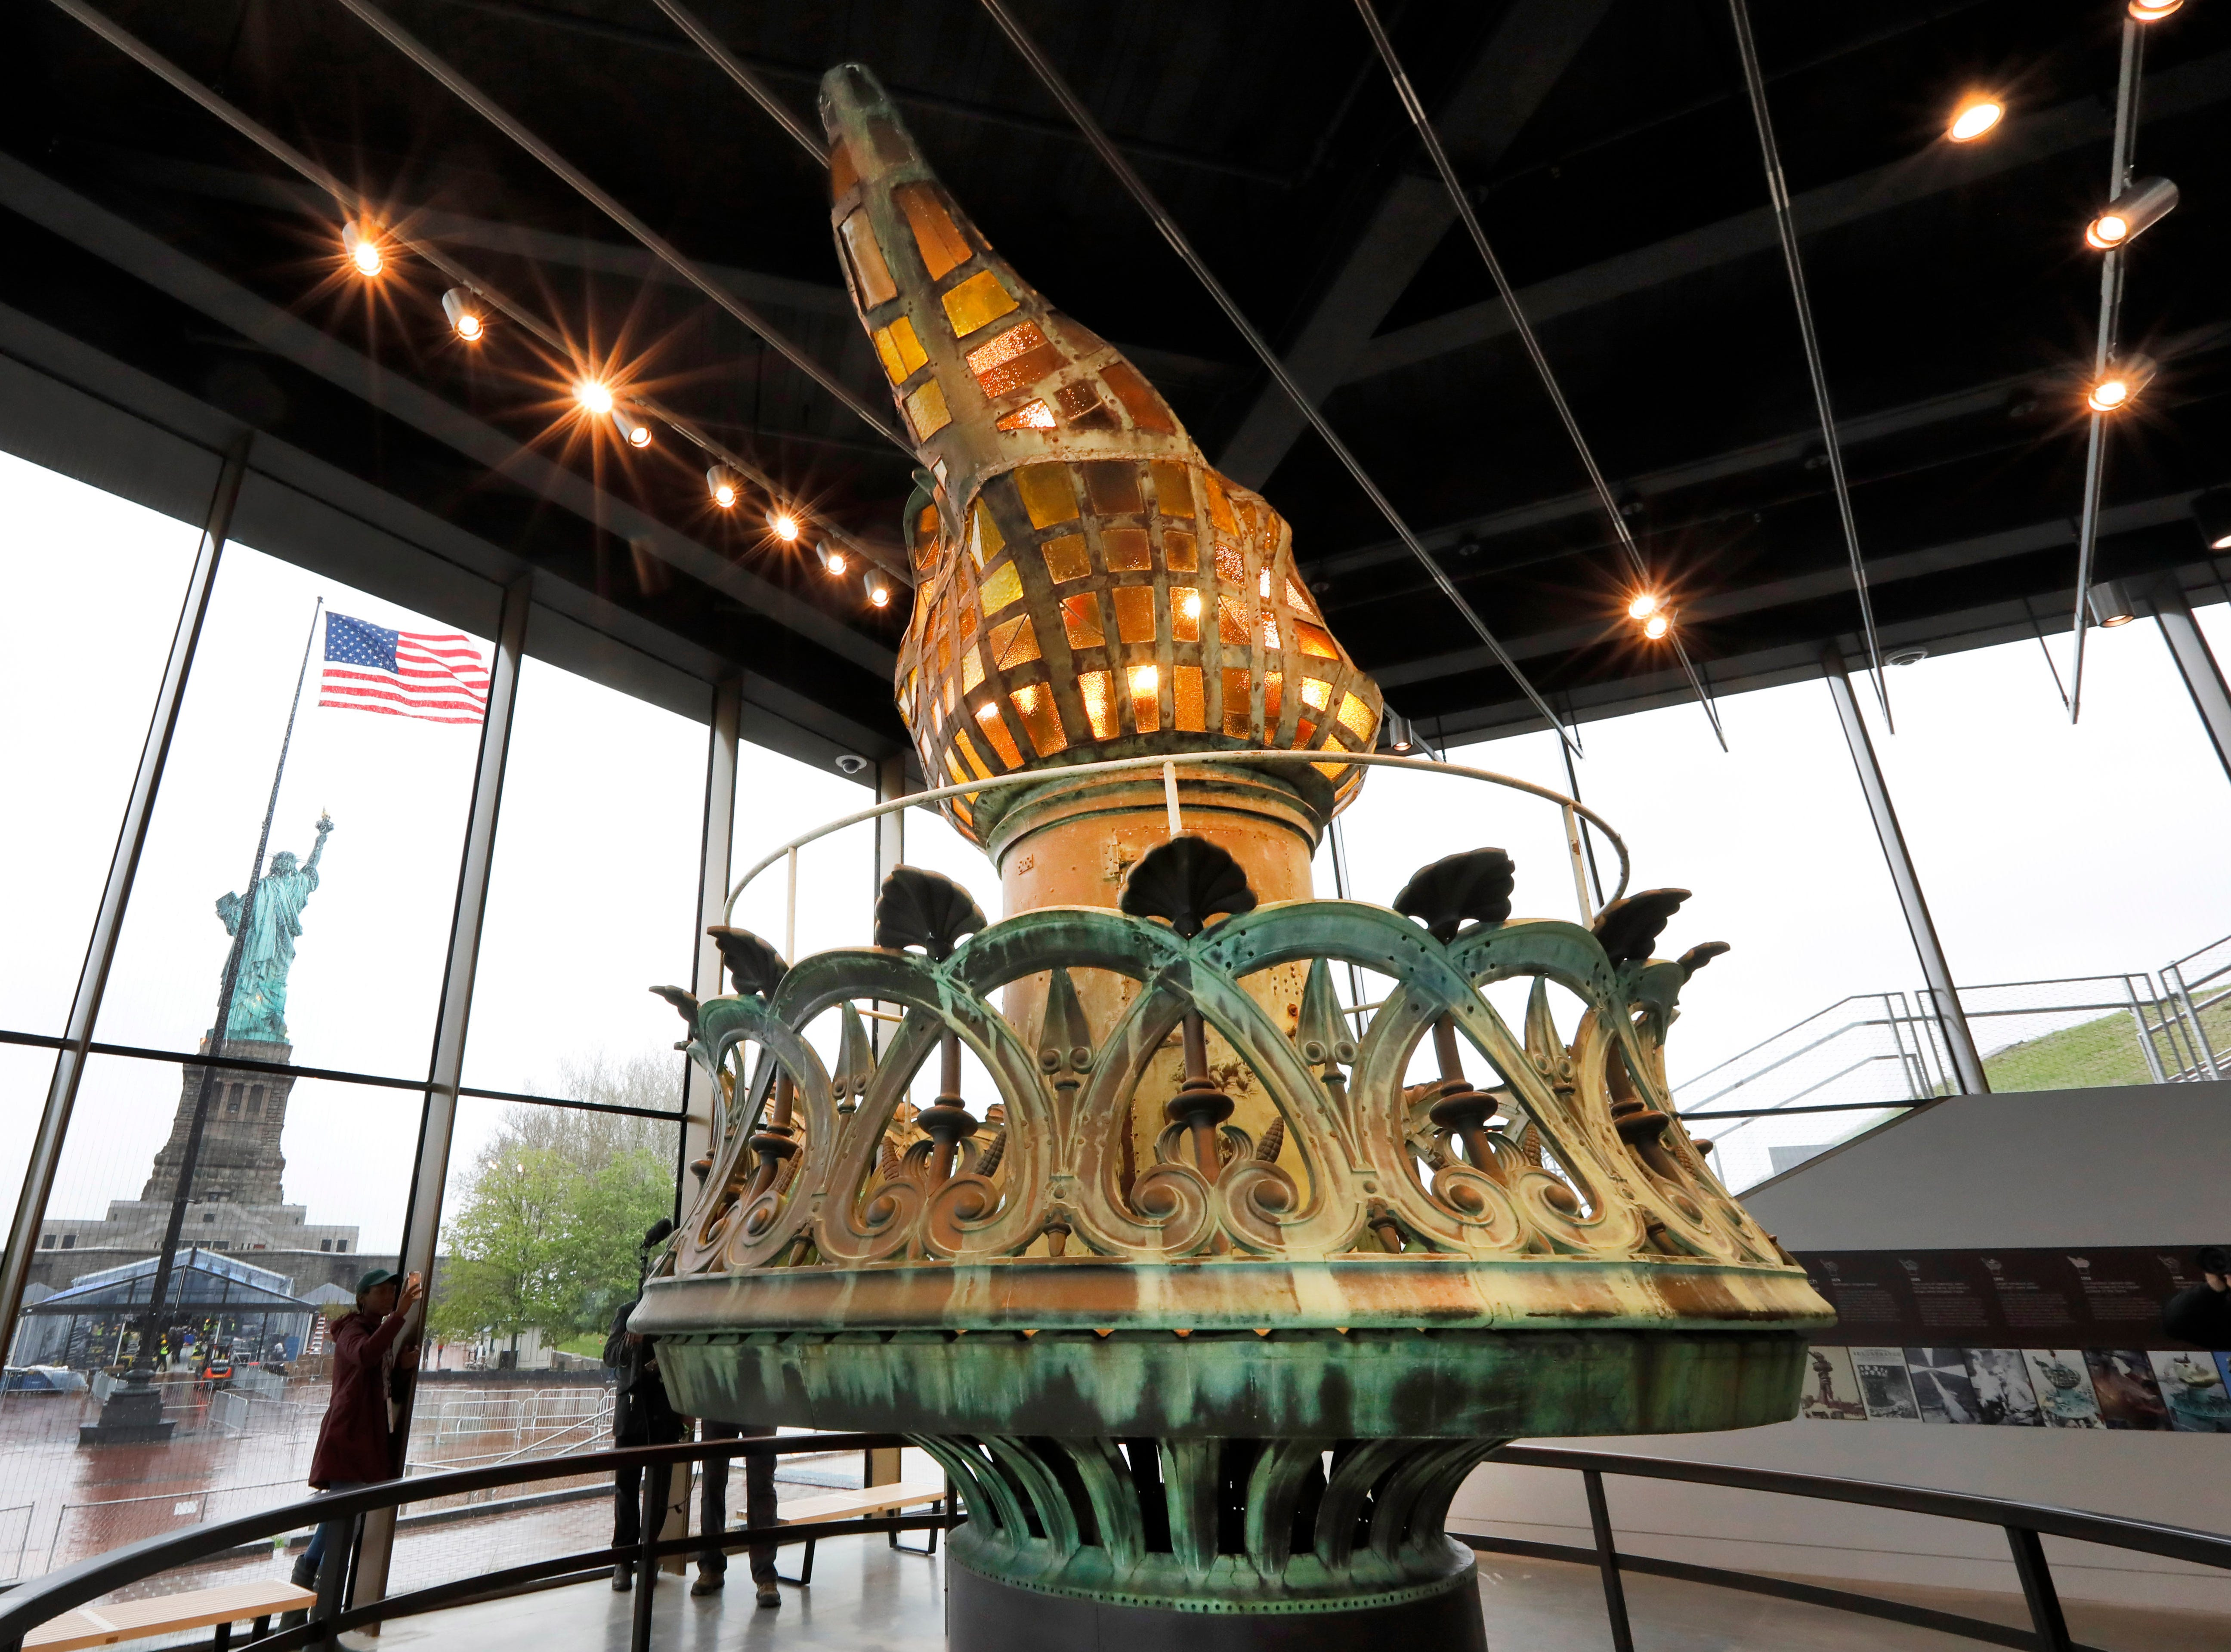 The original torch and flame are displayed in the new  museum. Other features include a look at the city skyline through the decades from the Statue of Liberty's eyes, as well as how the statue itself looked before its copper exterior turned green.